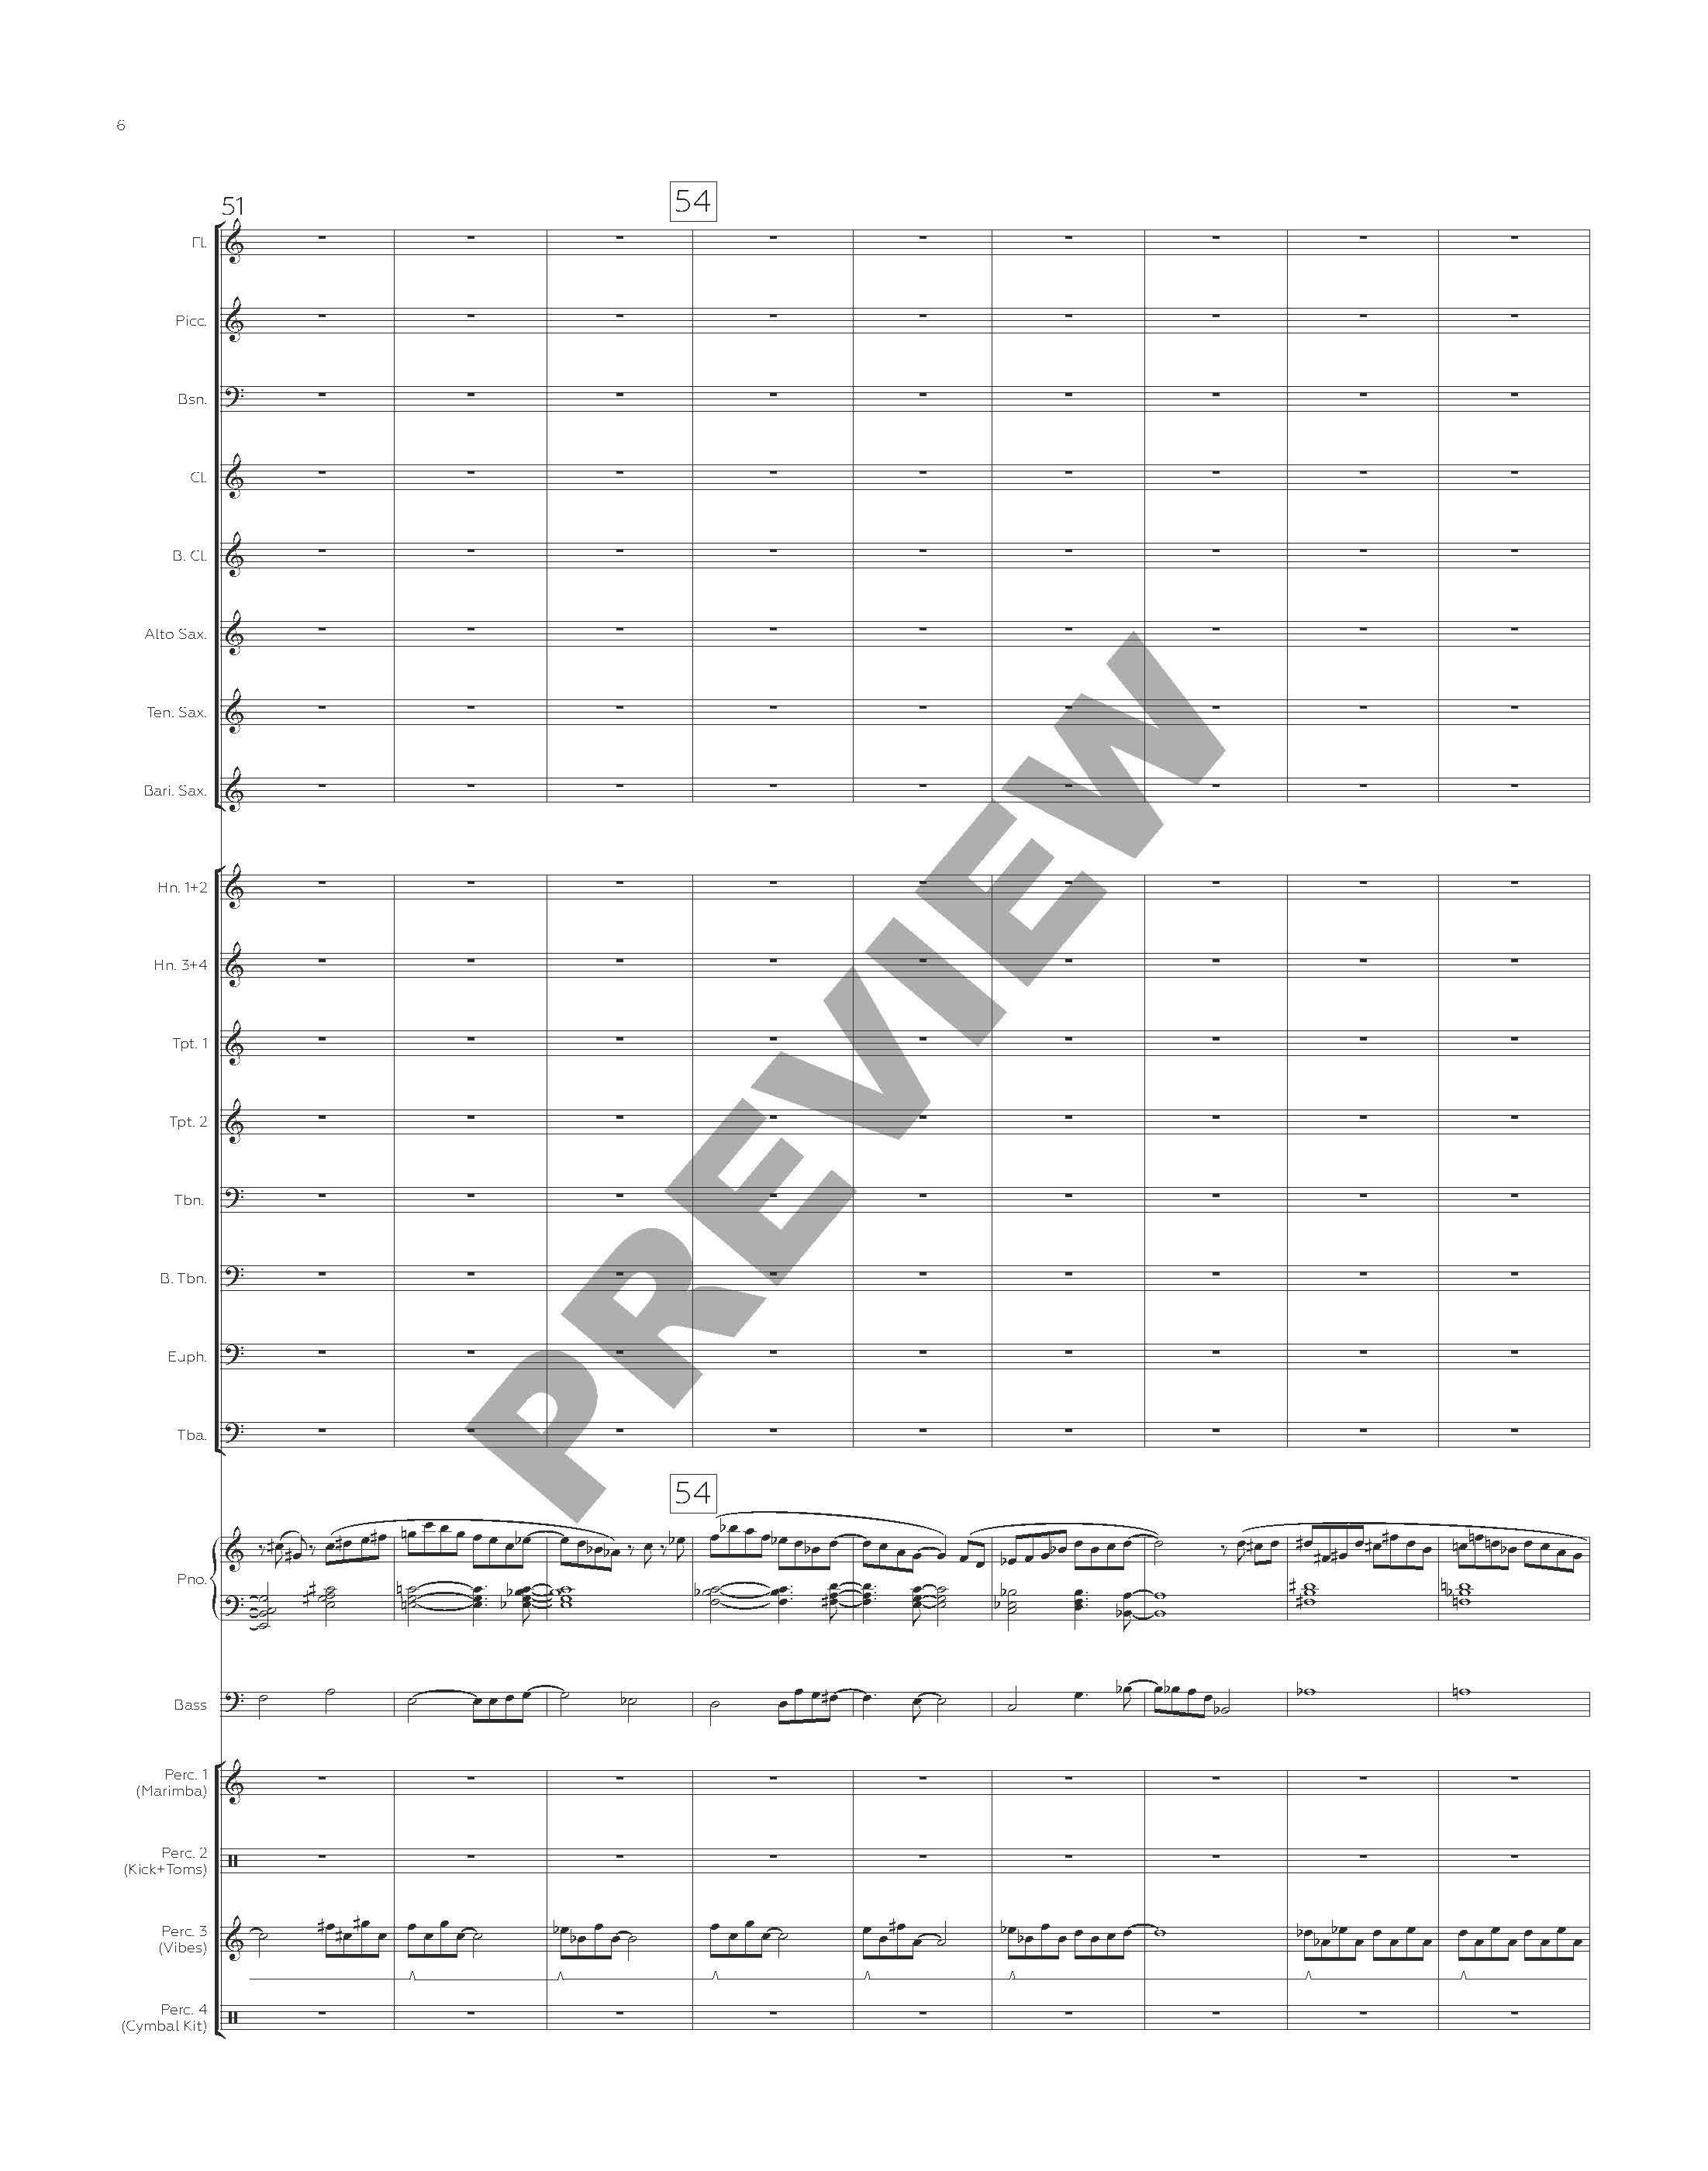 Melt this Pot - Full Score_Page_08.jpg